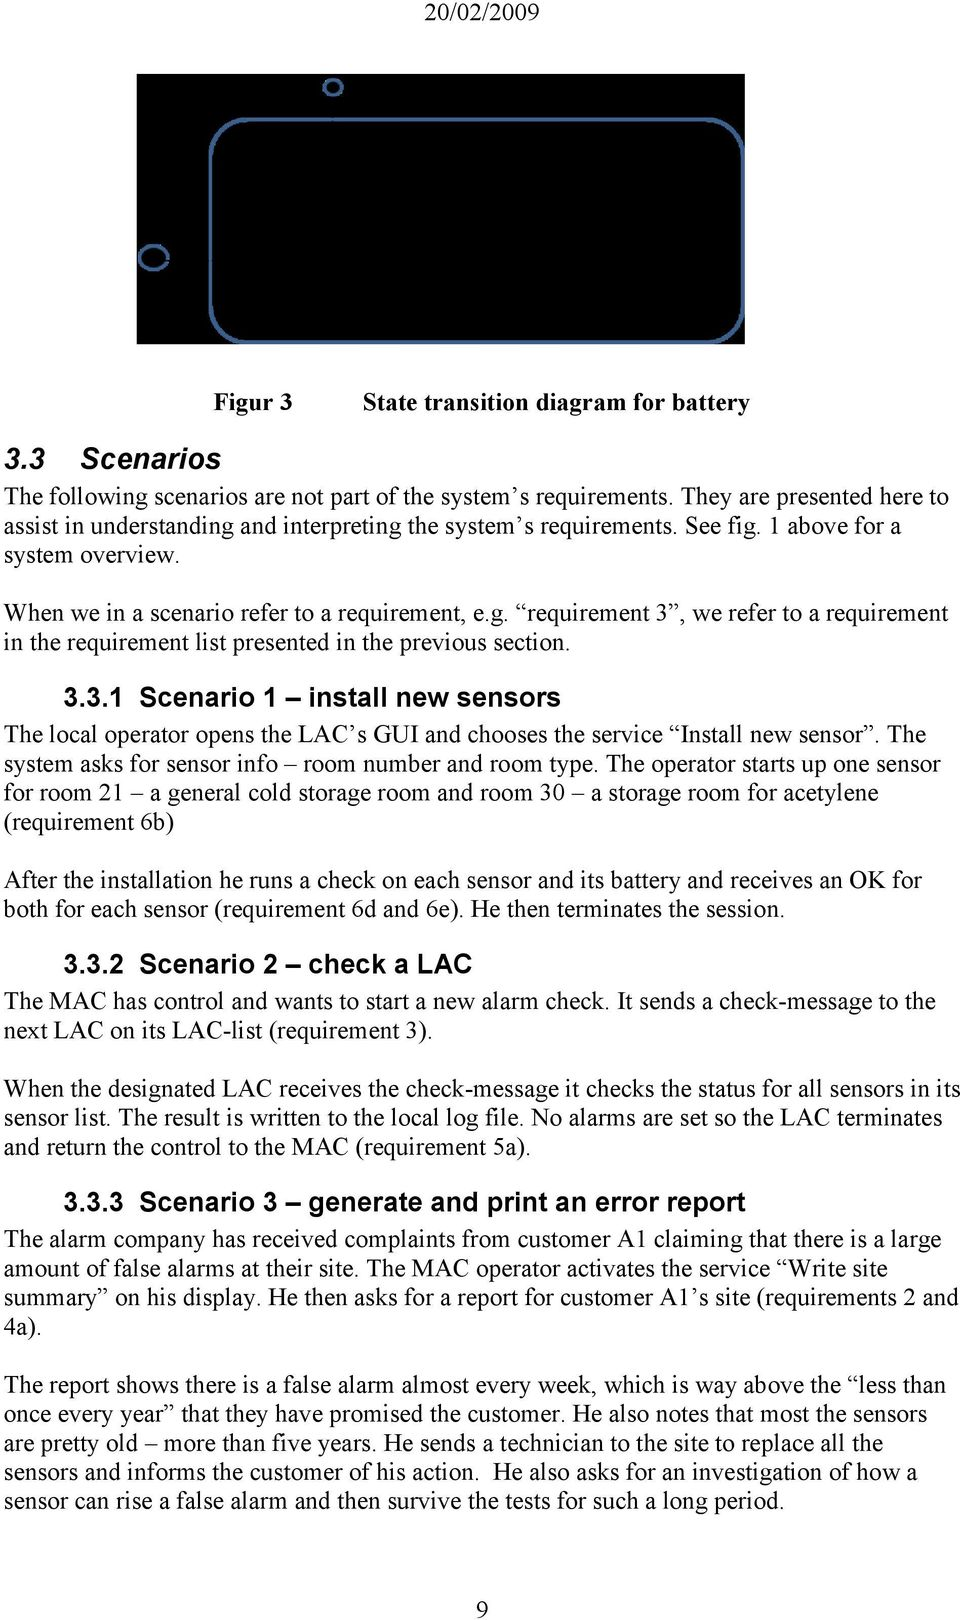 3.3.1 Scenario 1 install new sensors The local operator opens the LAC s GUI and chooses the service Install new sensor. The system asks for sensor info room number and room type.